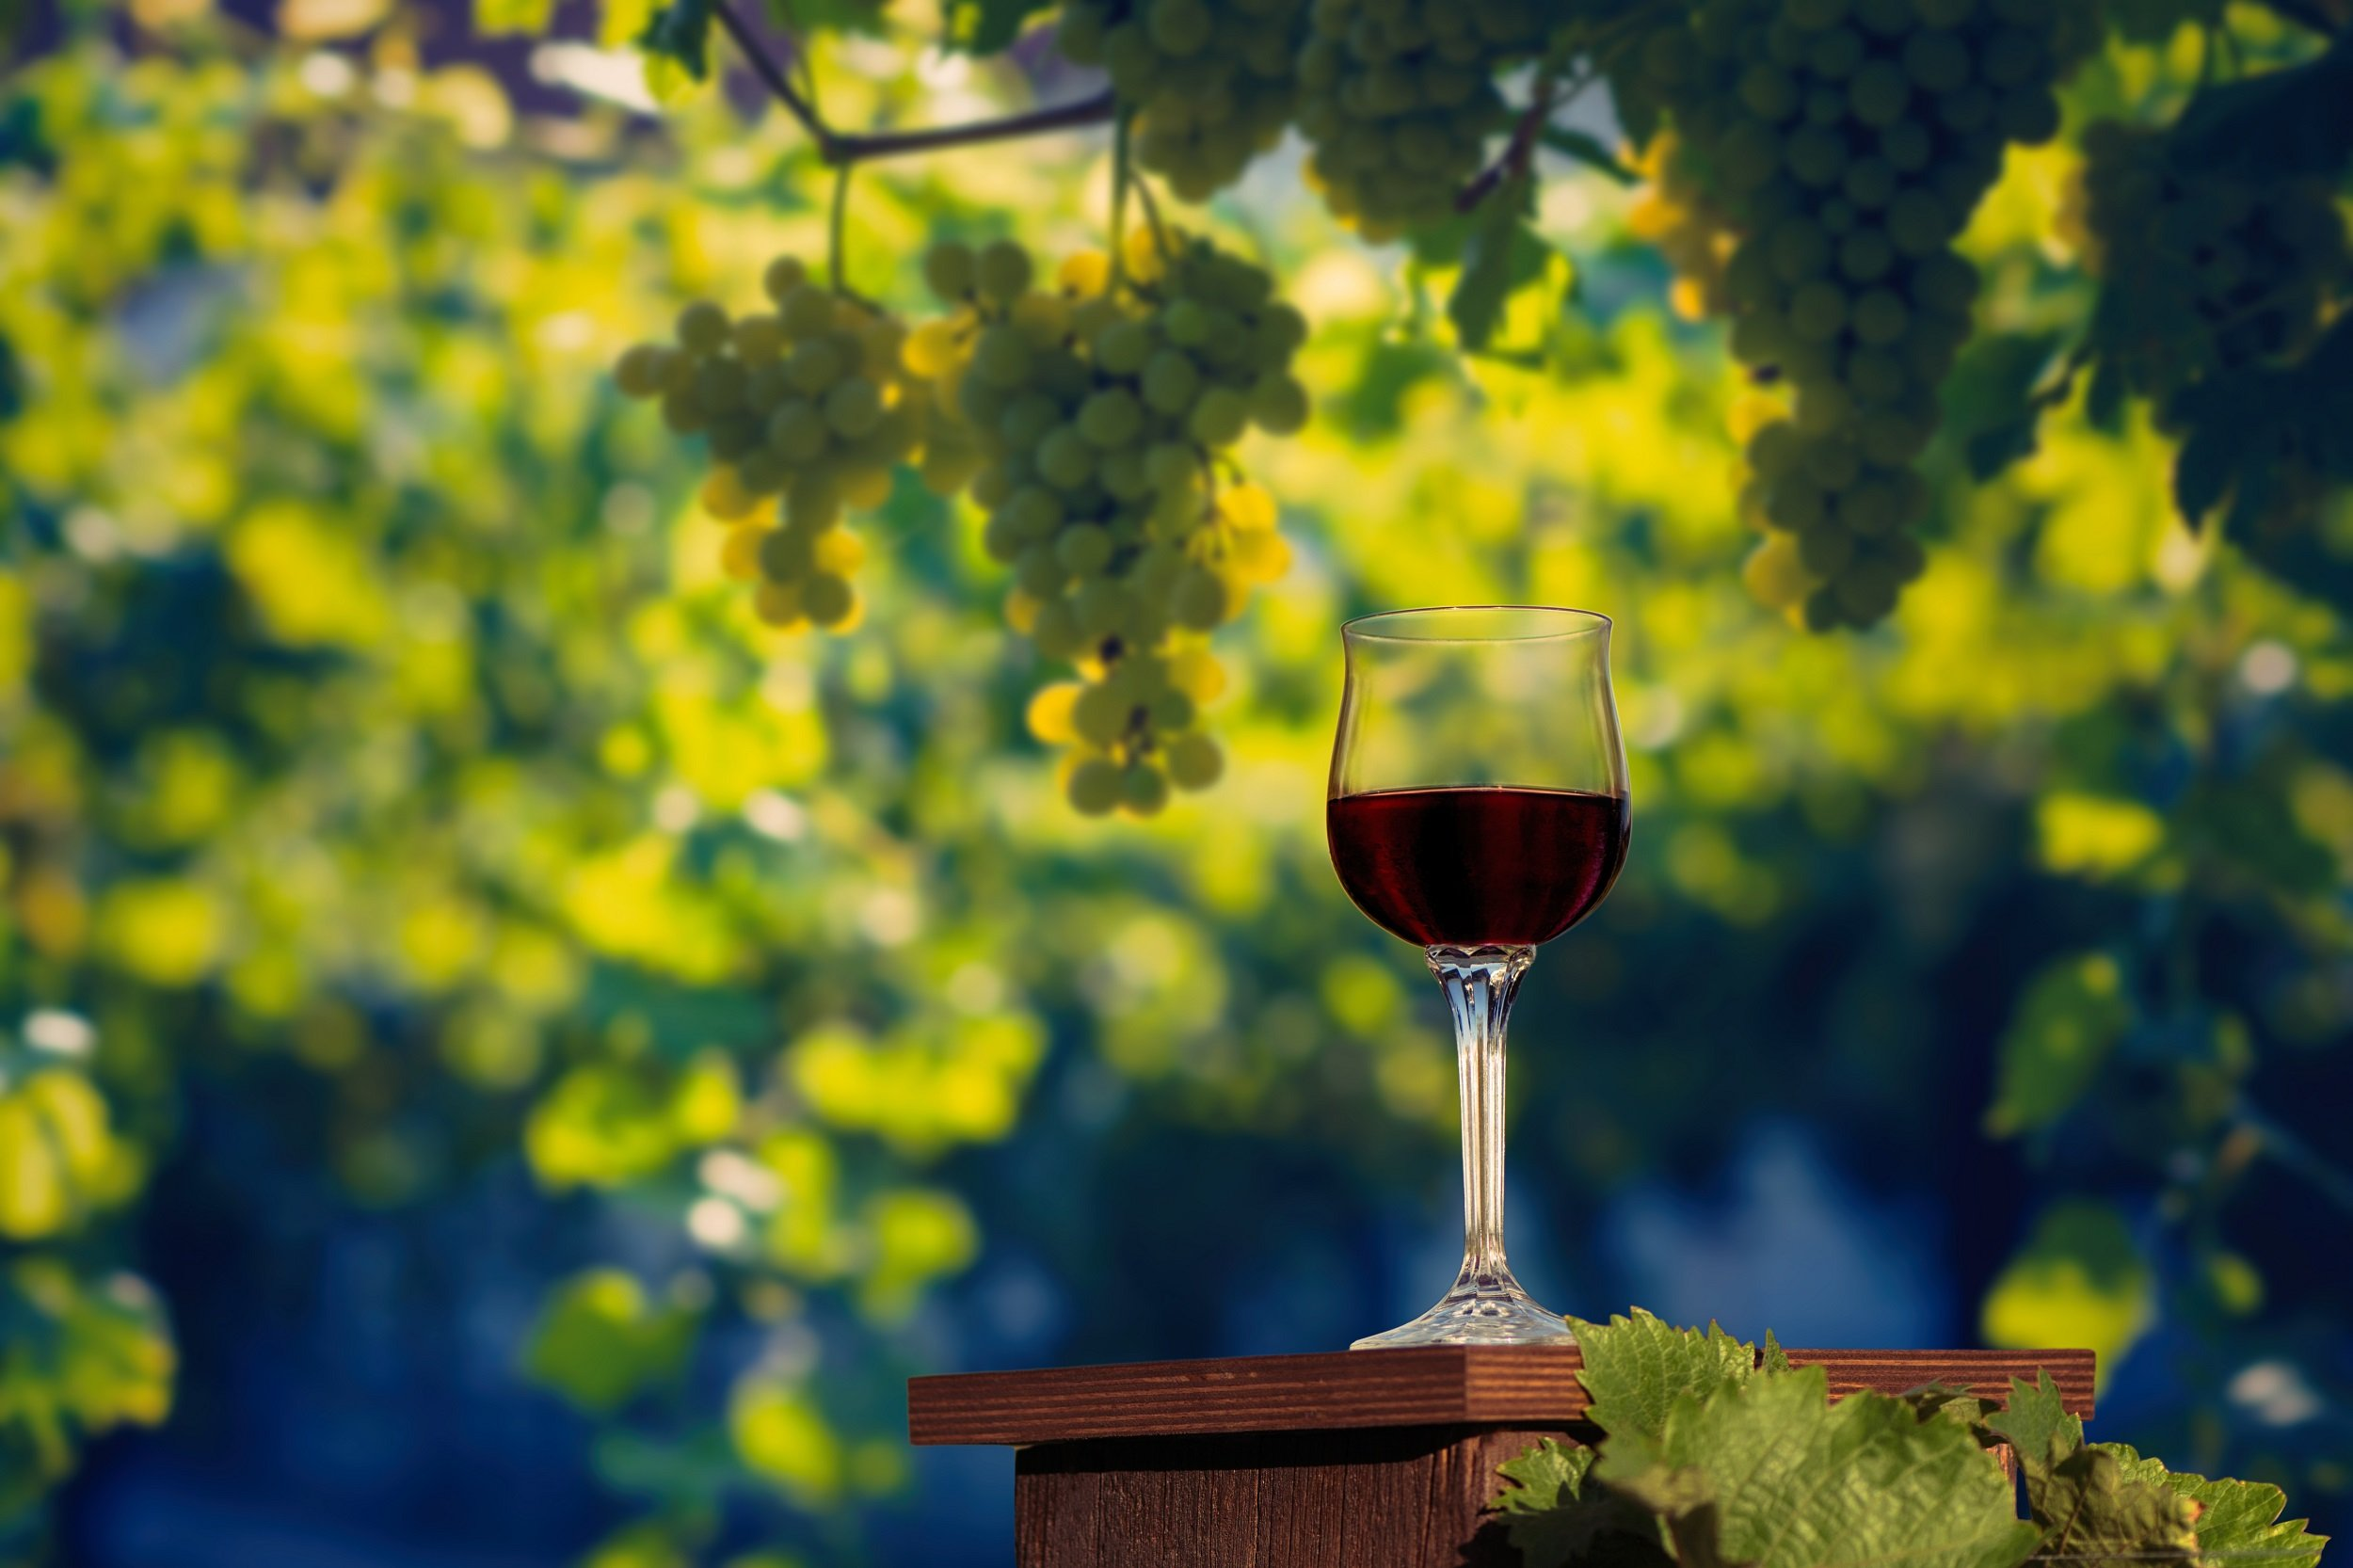 Visit A Local Winery On Our Siena 5 Day City Break Tour Package